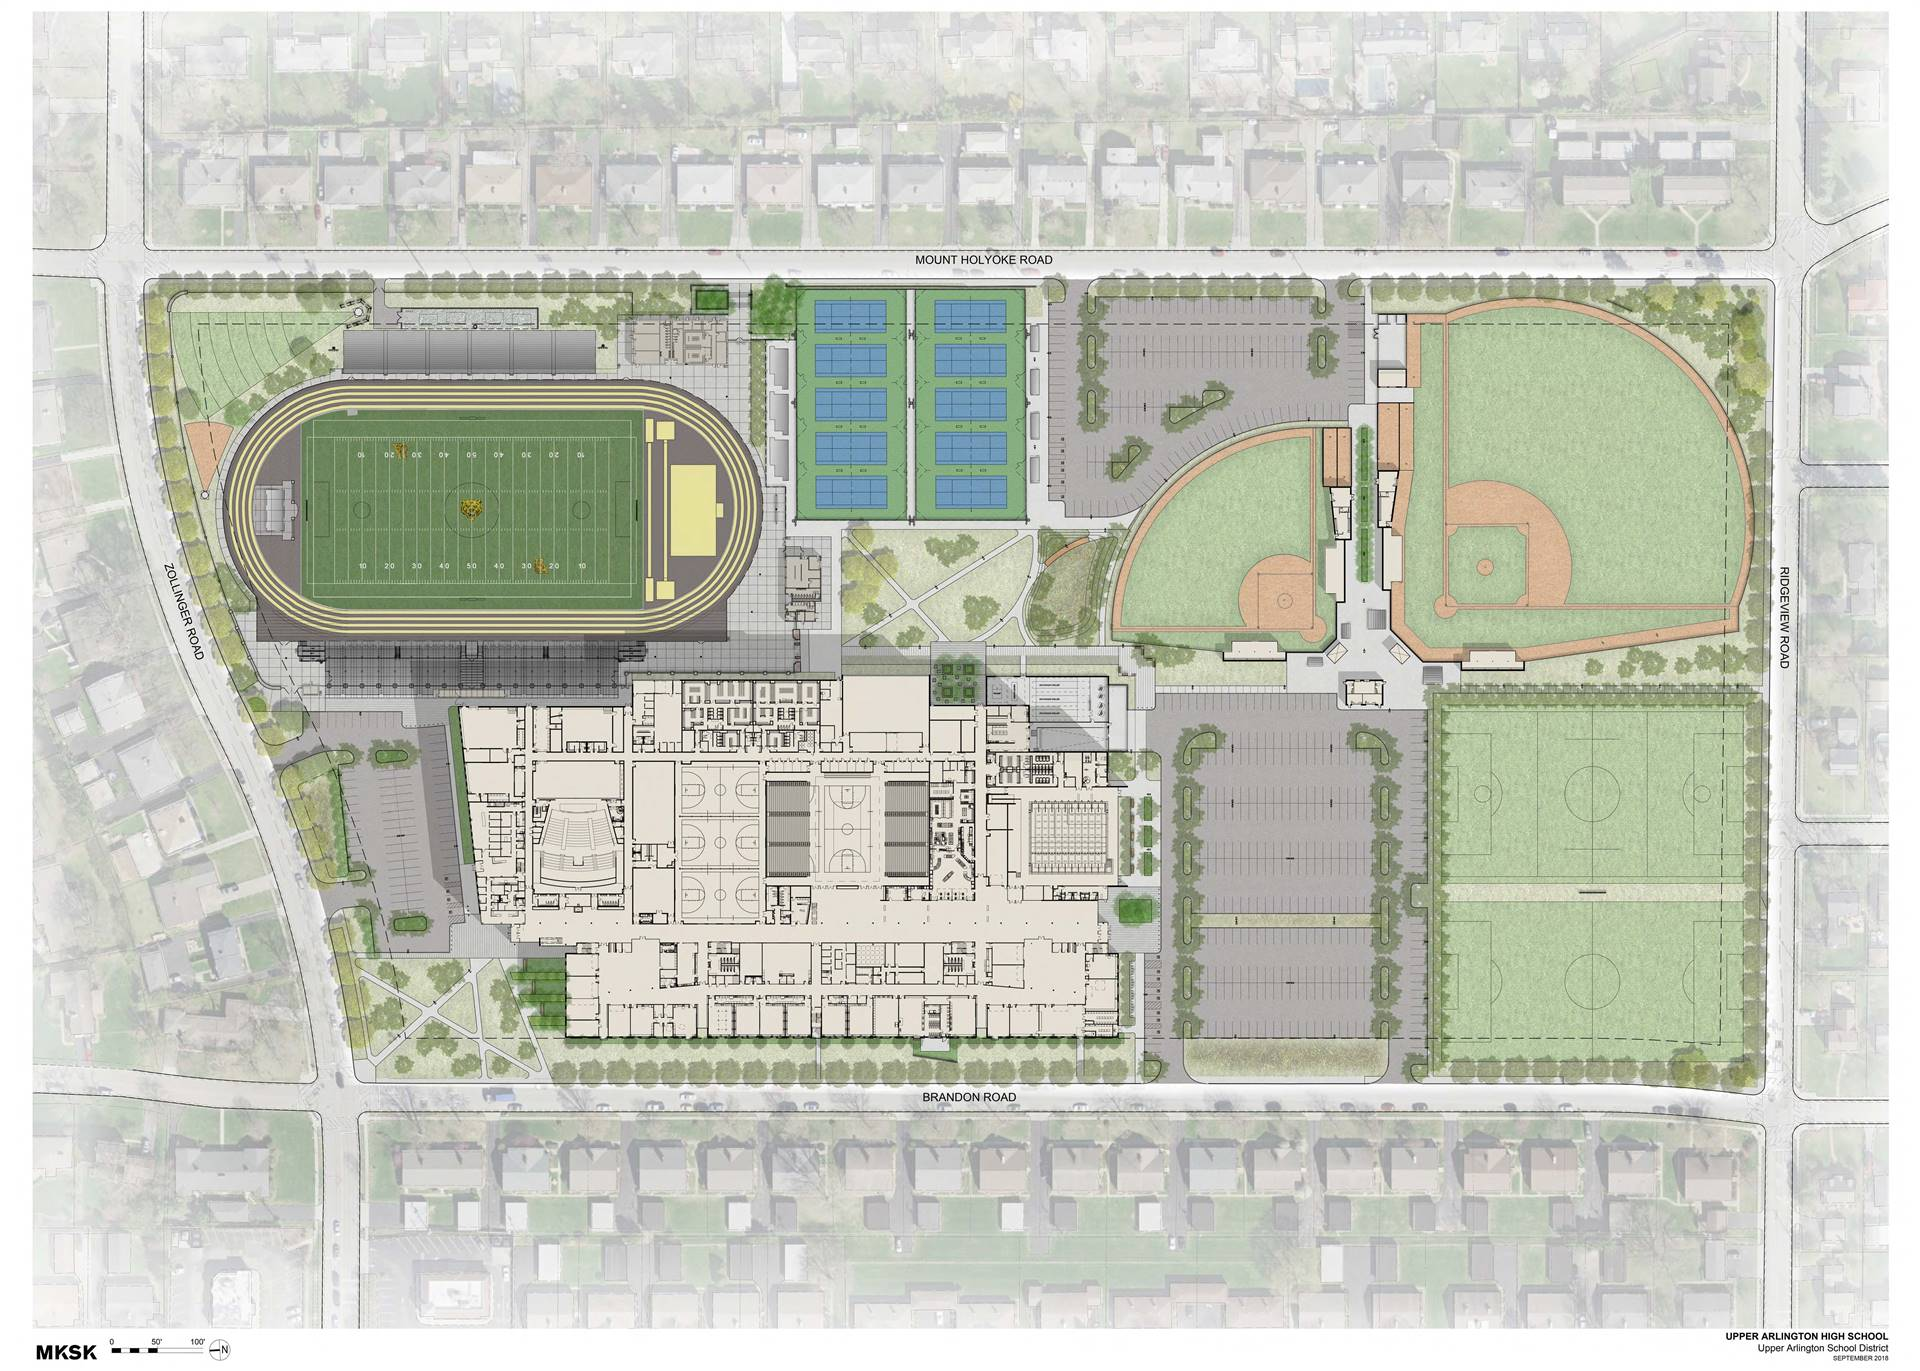 A site plan situating the school on the northwest portion of the site and athletic fields to the sou